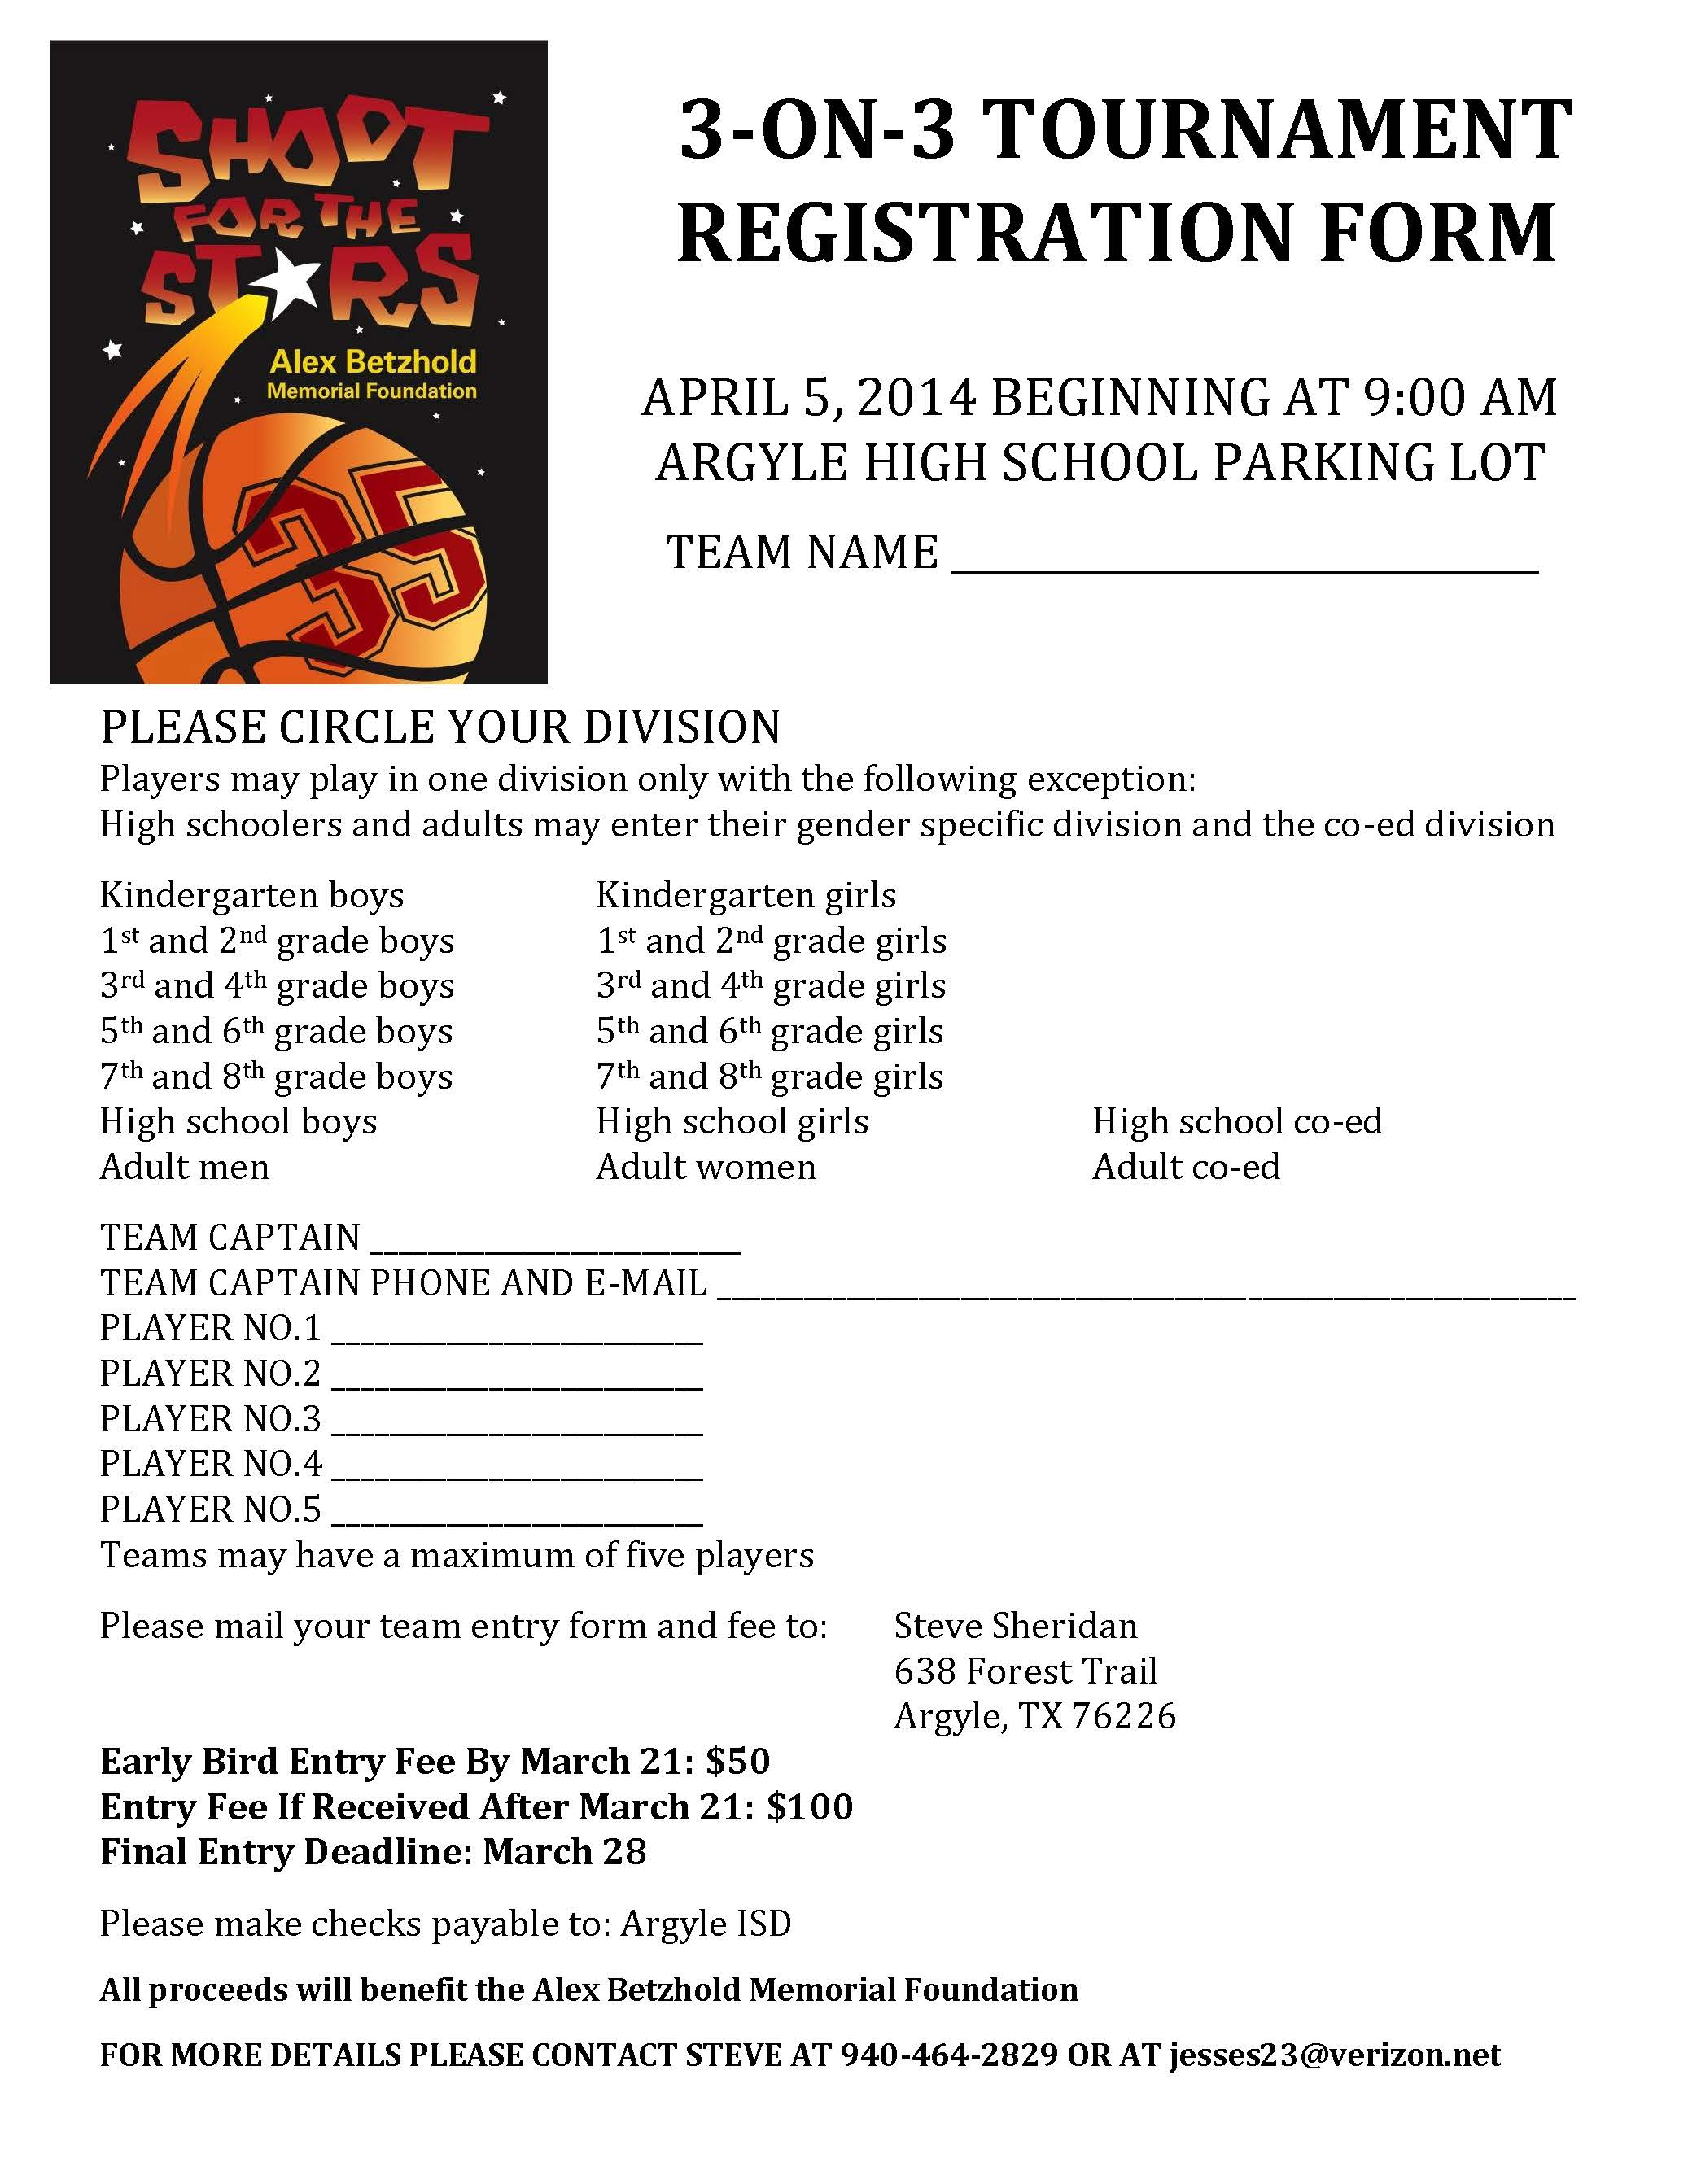 3 on 3 basketball tournament registration form template 28 3 on 3 basketball tournament registration form template the talon shoot for the 3 on sciox Gallery